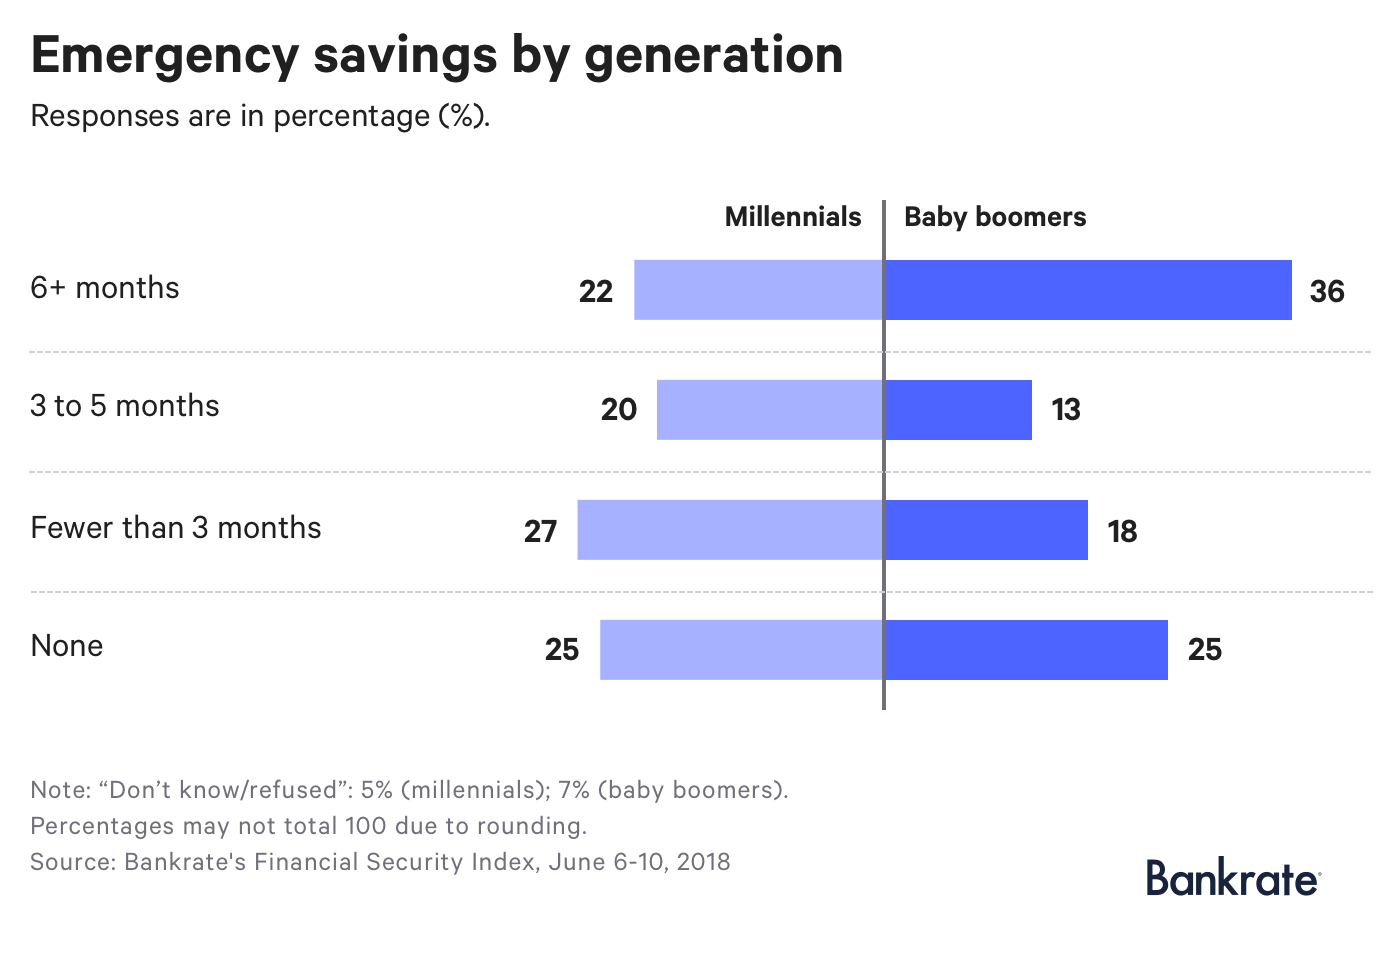 Chart: Comparison of how much emergency savings do Millennials and Baby boomers have